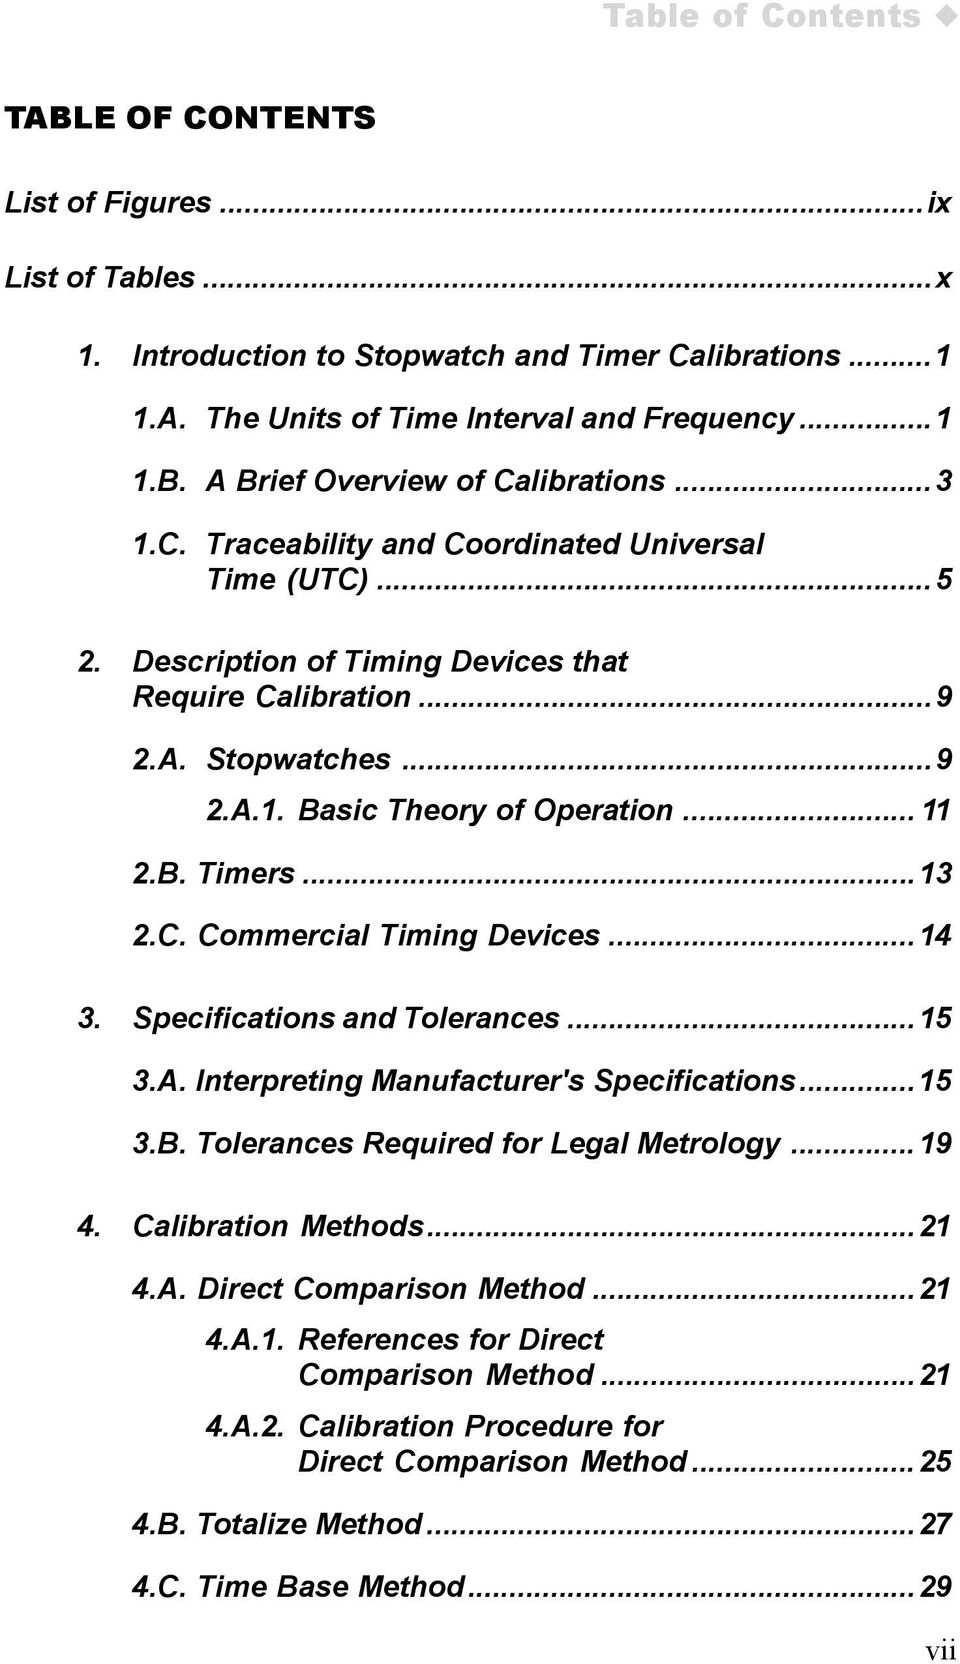 ..13 2.C. Commercial Timing Devices...14 3. Specifications and Tolerances...15 3.A. Interpreting Manufacturer's Specifications...15 3.B. Tolerances Required for Legal Metrology...19 4.